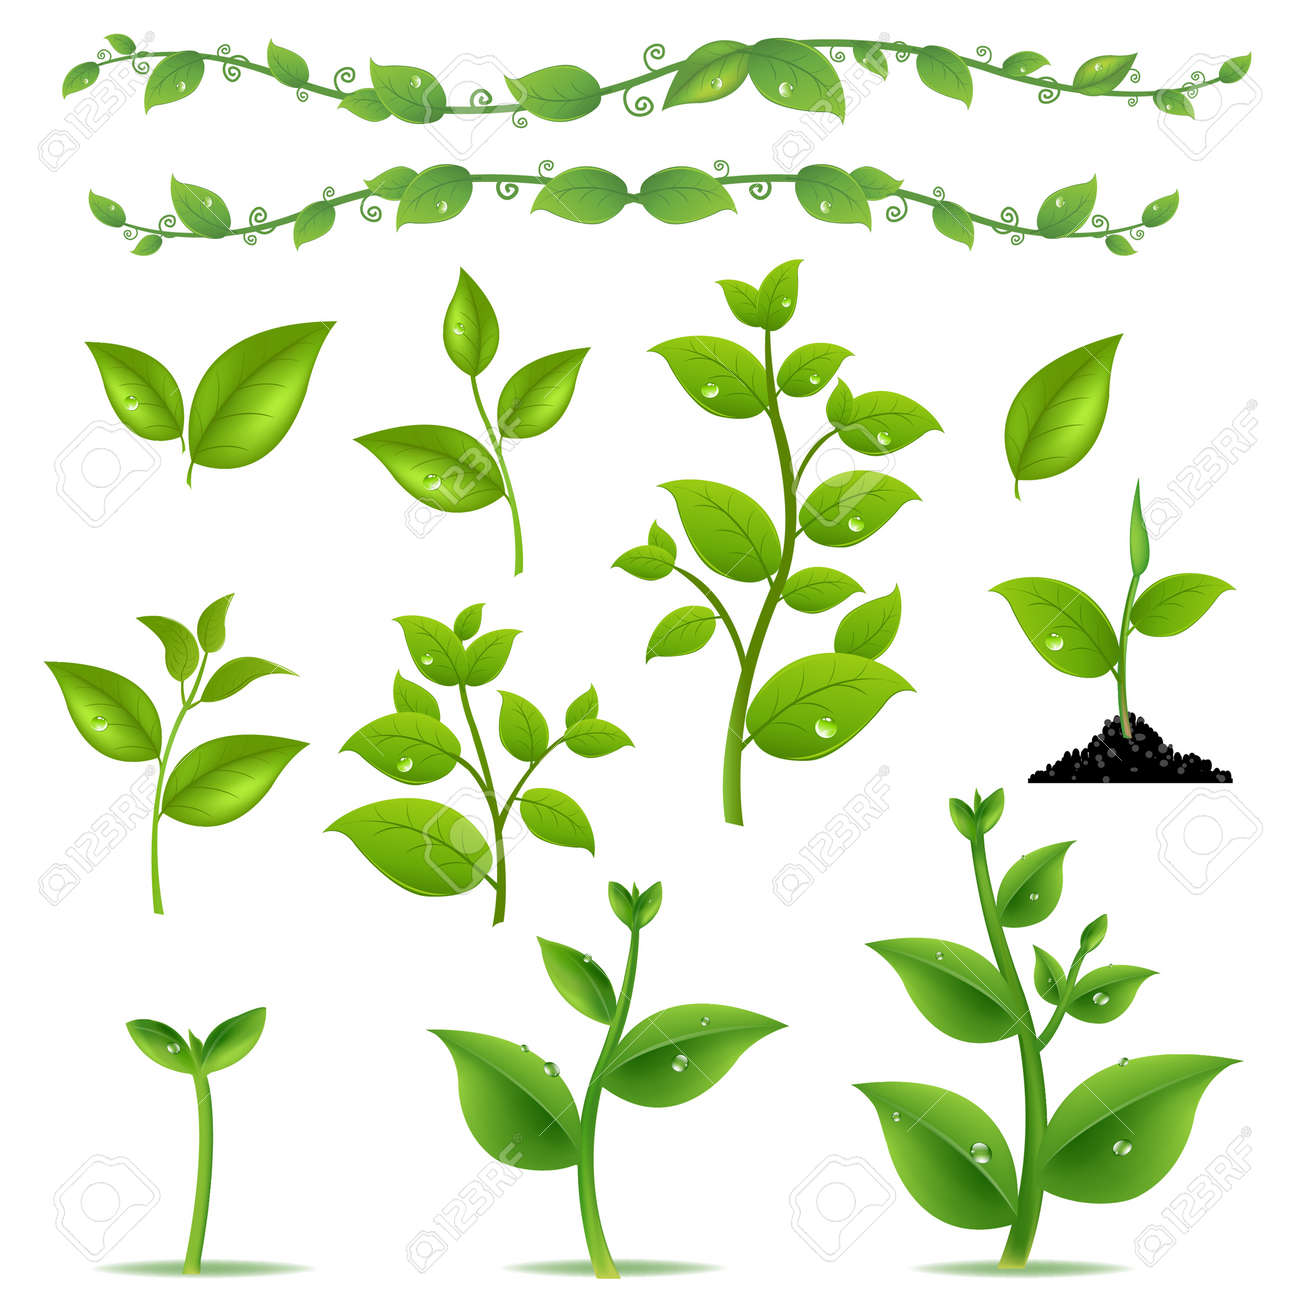 Set Leaves And Plants With Gradient Mesh, Vector Illustration - 38654607